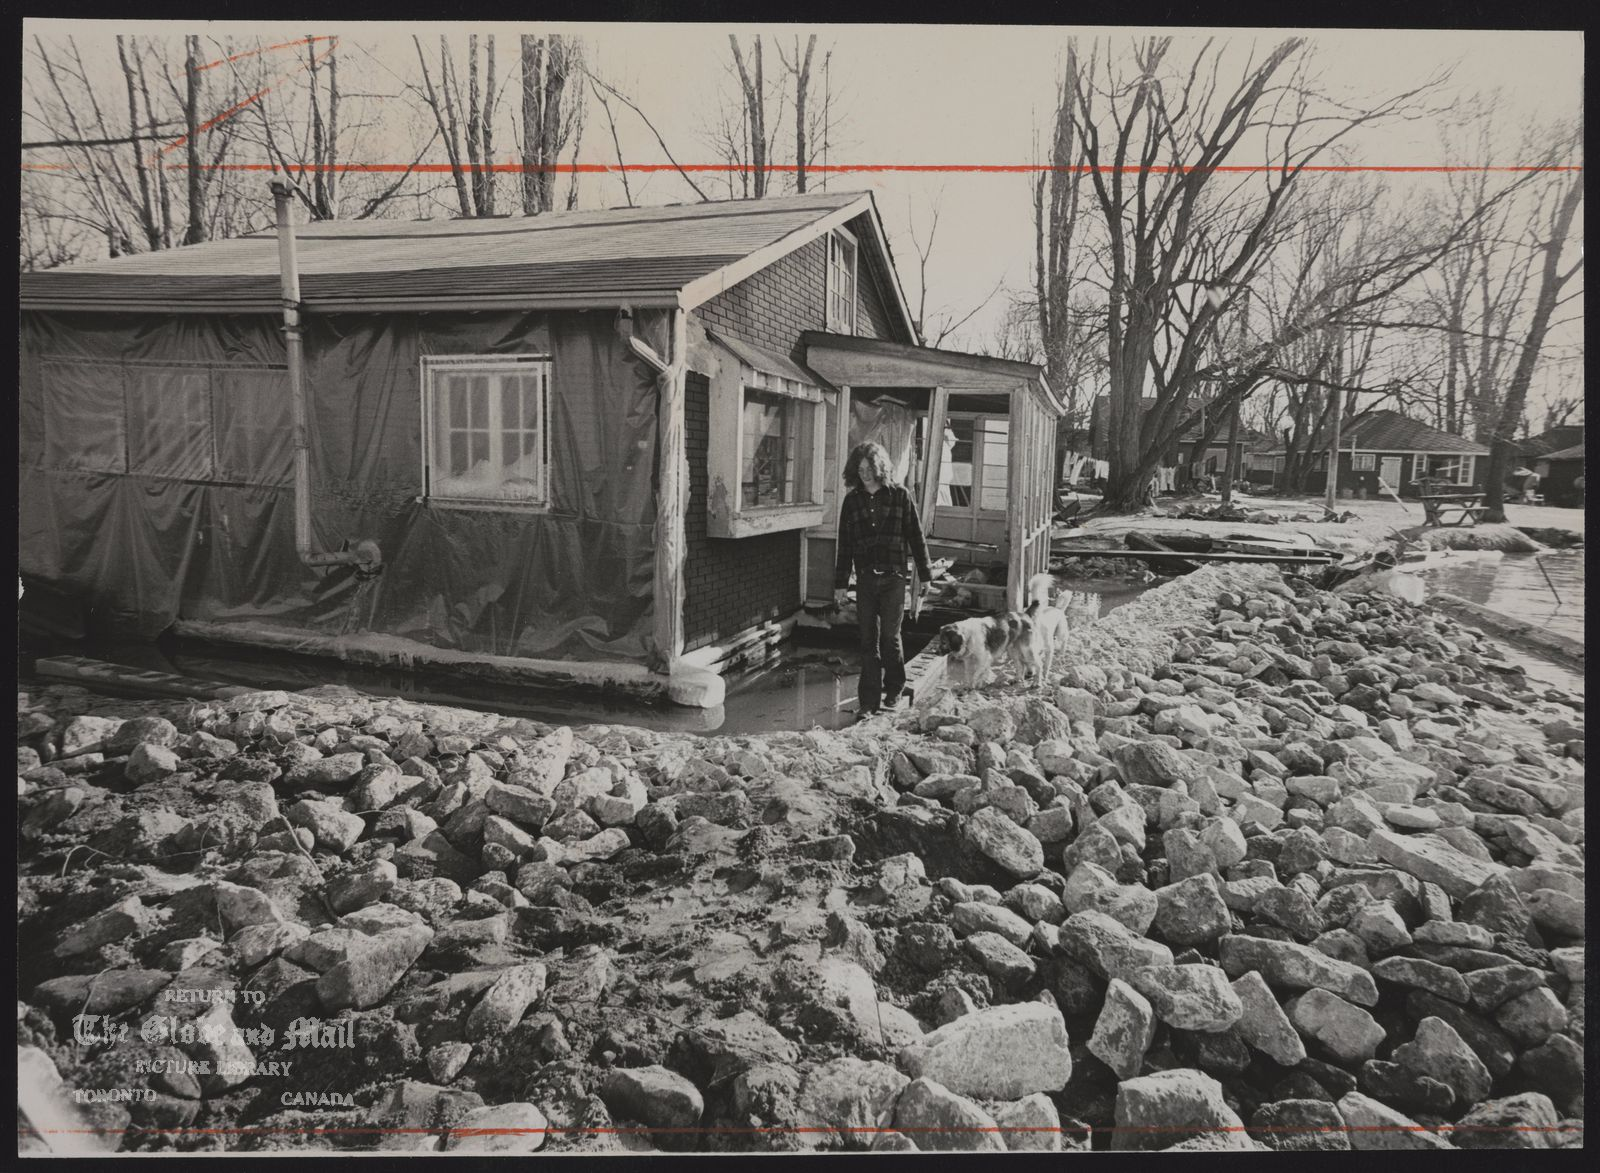 LAKE LEVELS (Just a few weeks ago the waters of Lake Ontario were lapping at Paul Saltzman's Channel Street home on Ward's Island, then creeping under the building as lake levels rose. Since then the city has poured tons of rock into the lake to protect the Channel Street homes.